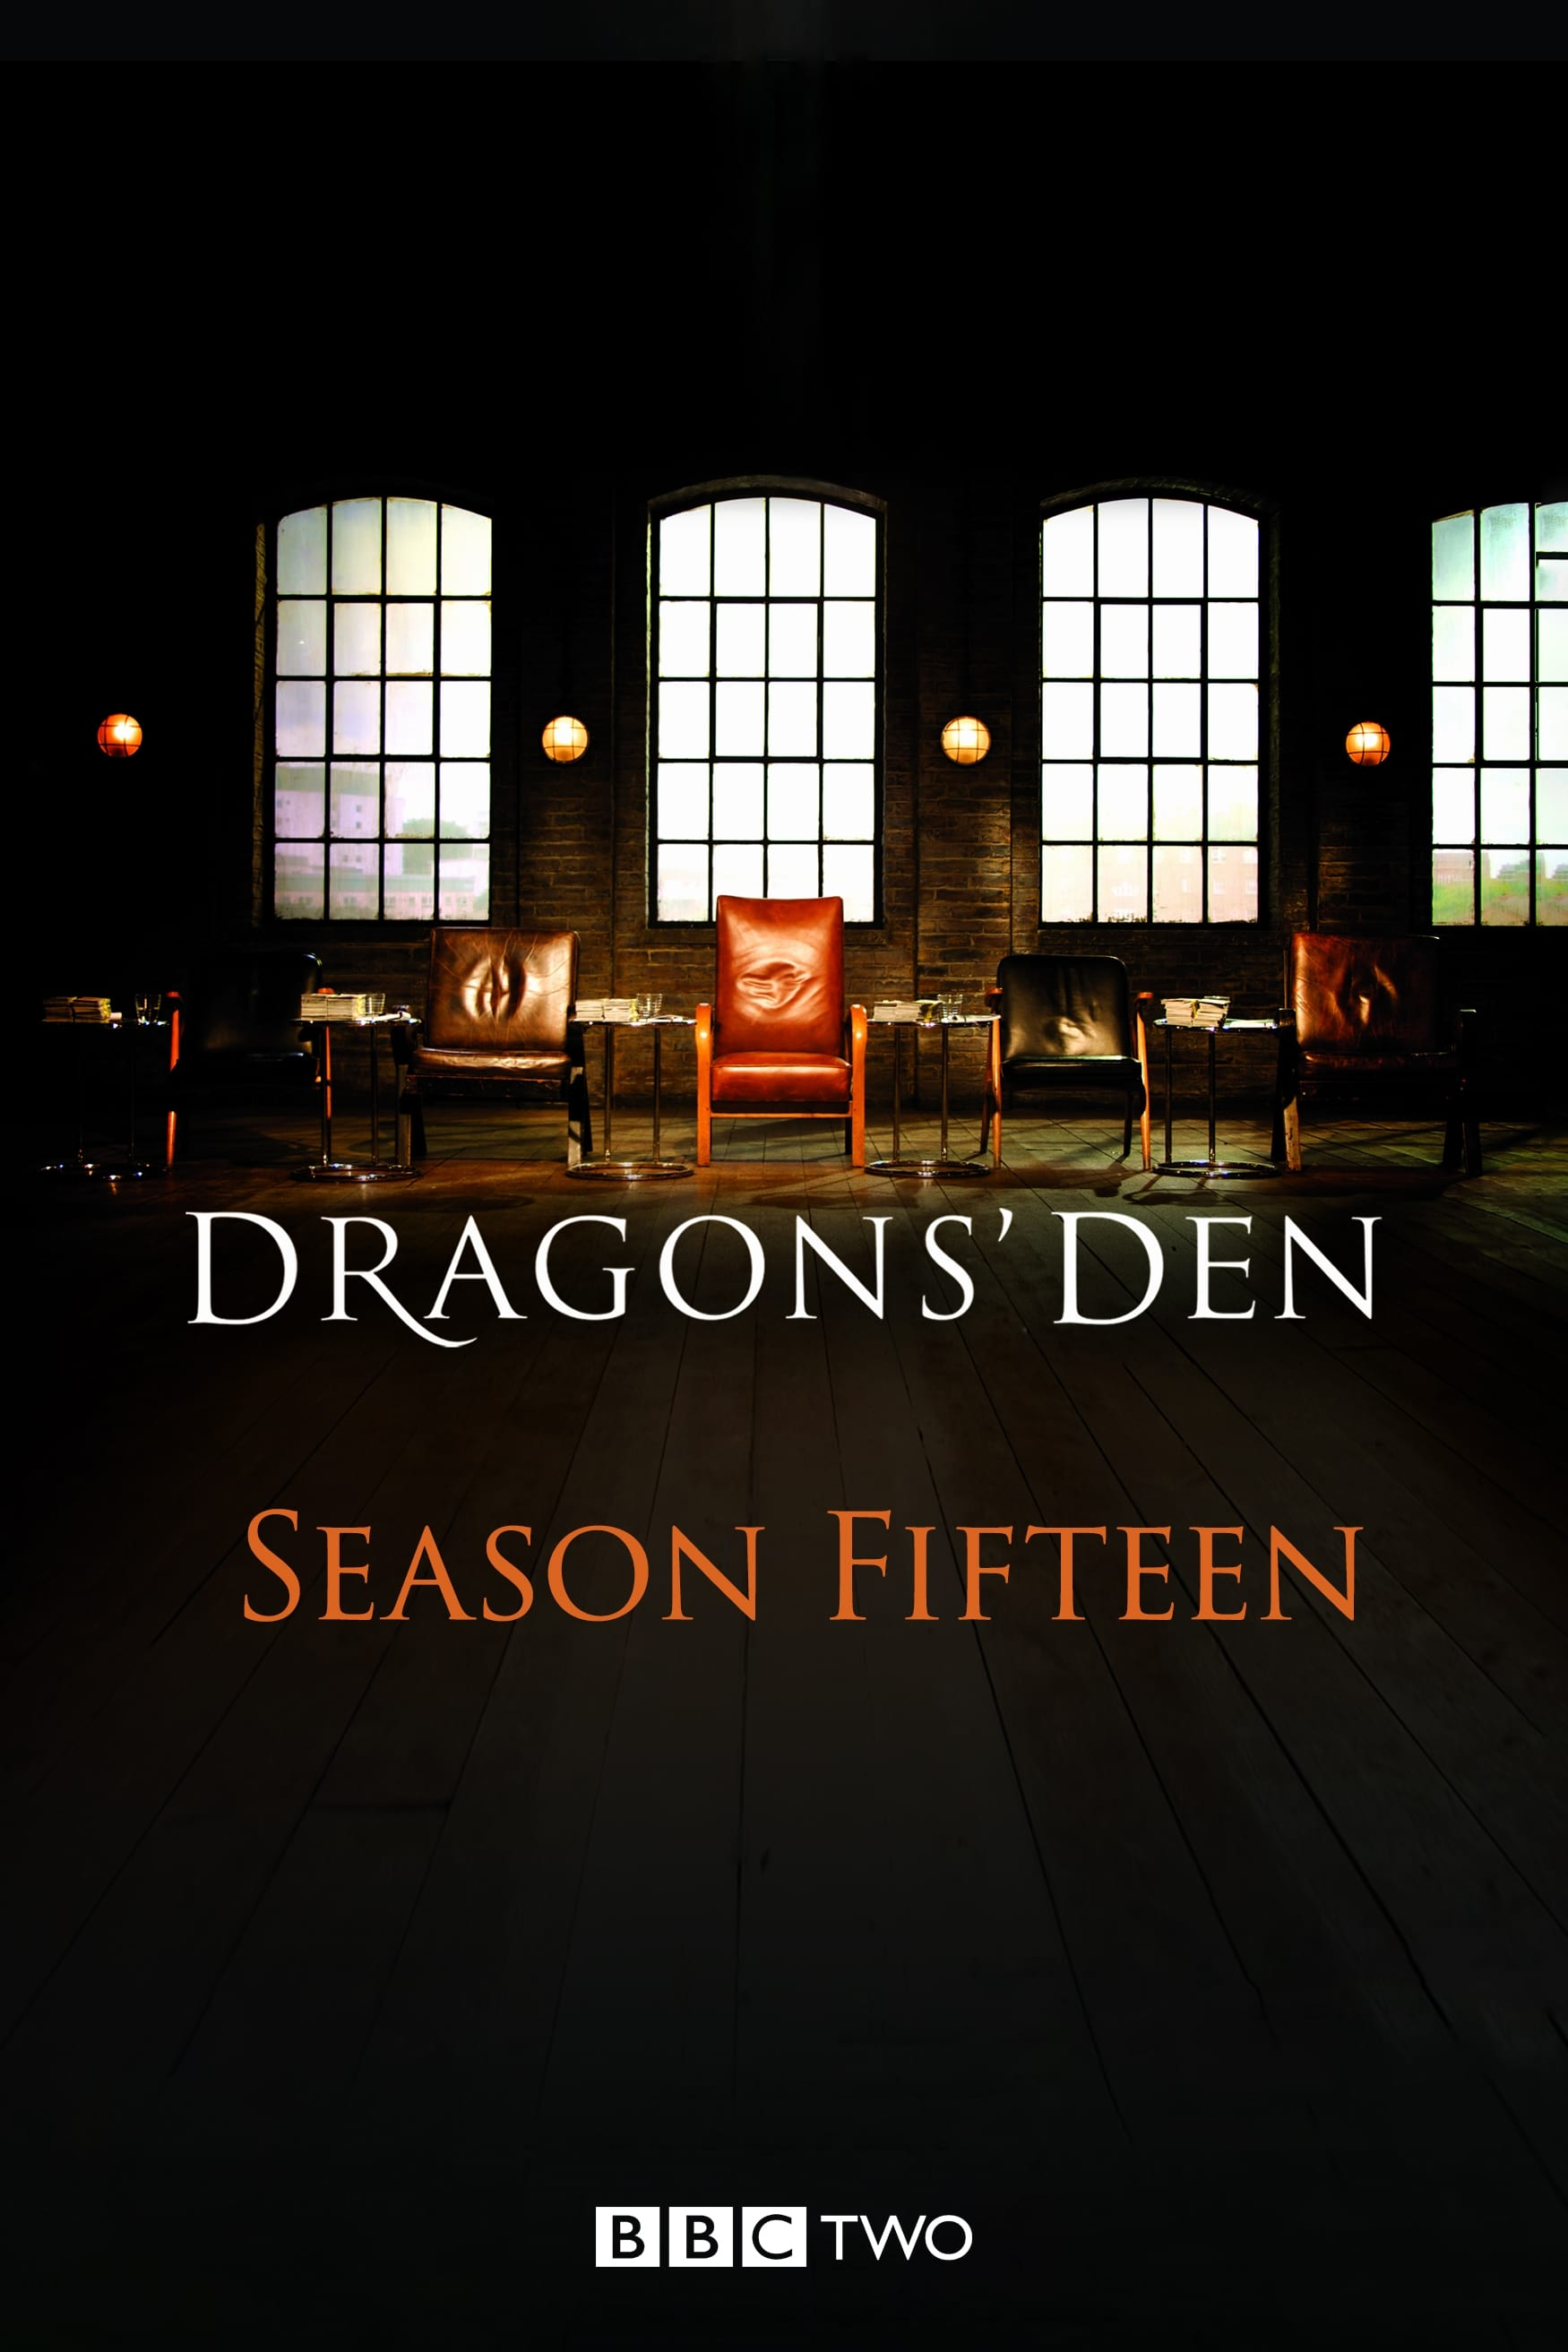 Dragons' Den Season 15